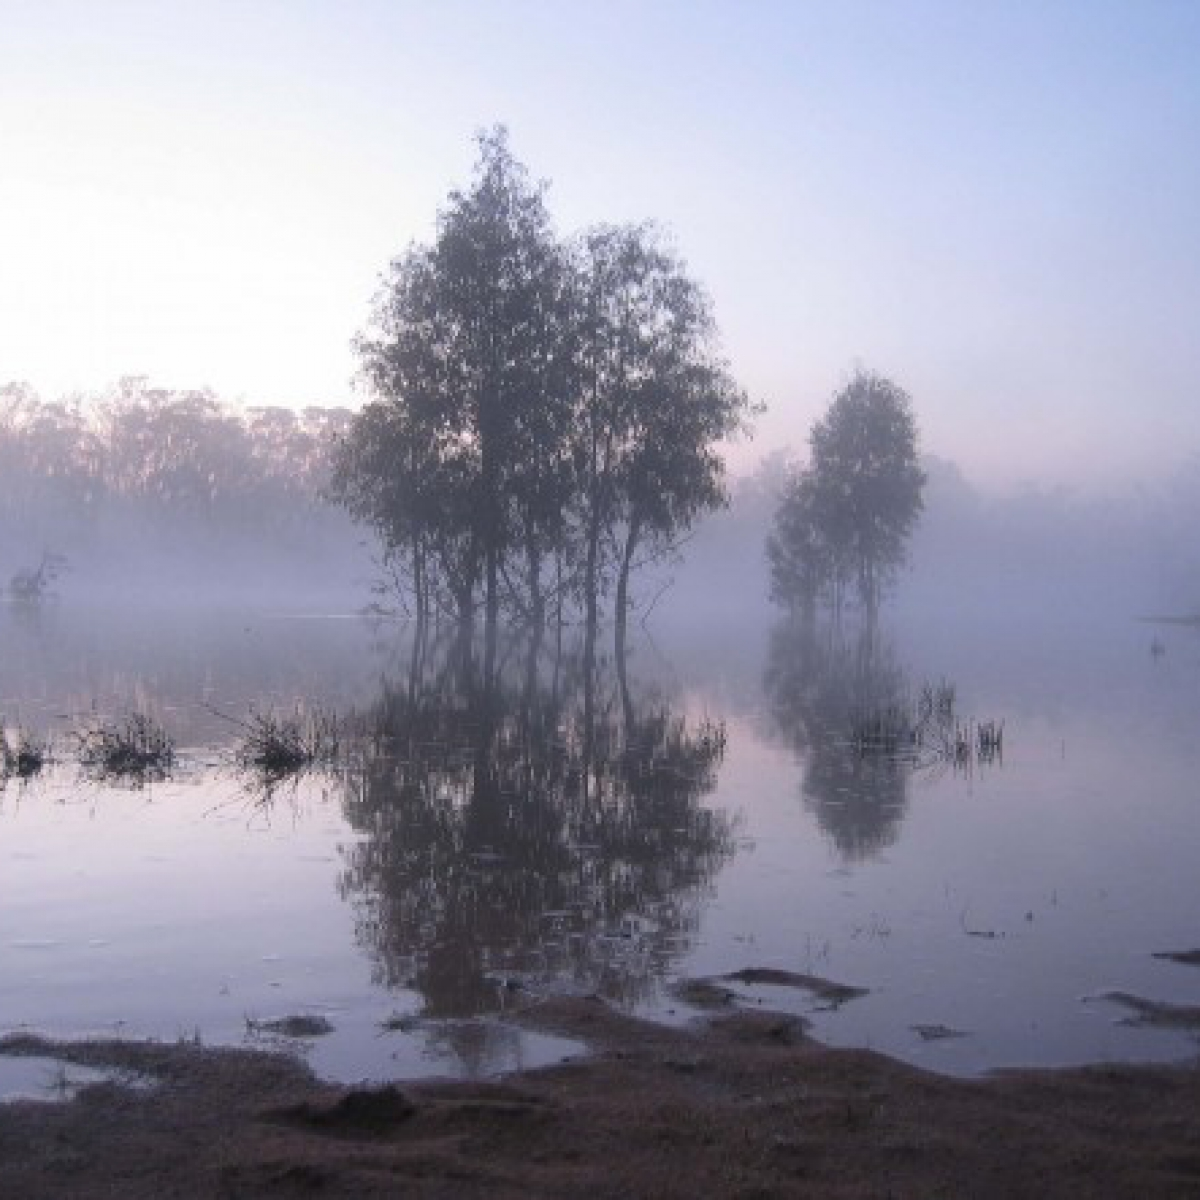 Morning mist on the Murray River, NSW